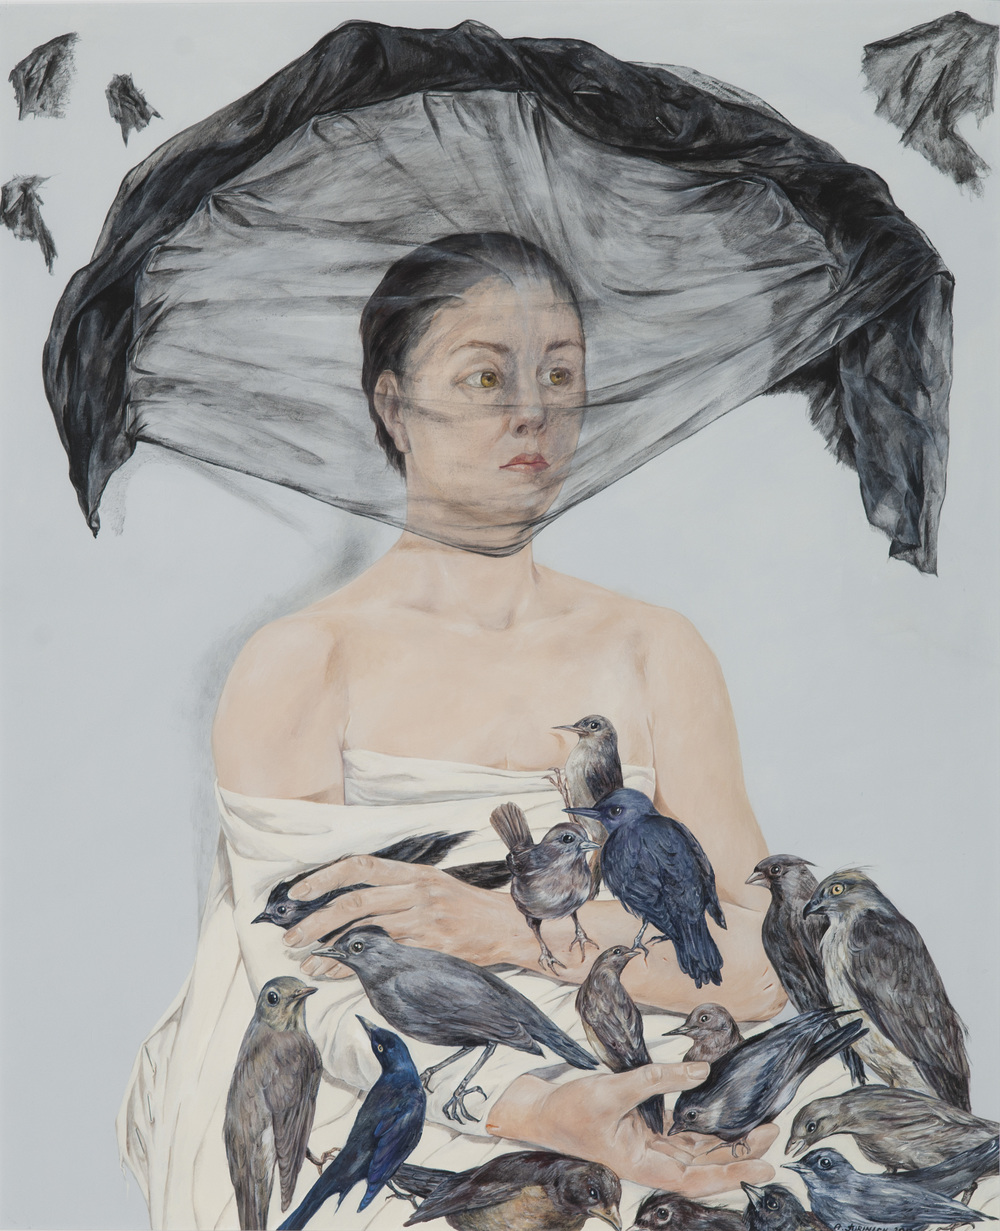 Anna Jurinich Saving Her Face, 2010 Acrylic, staples 31 x 27 inches